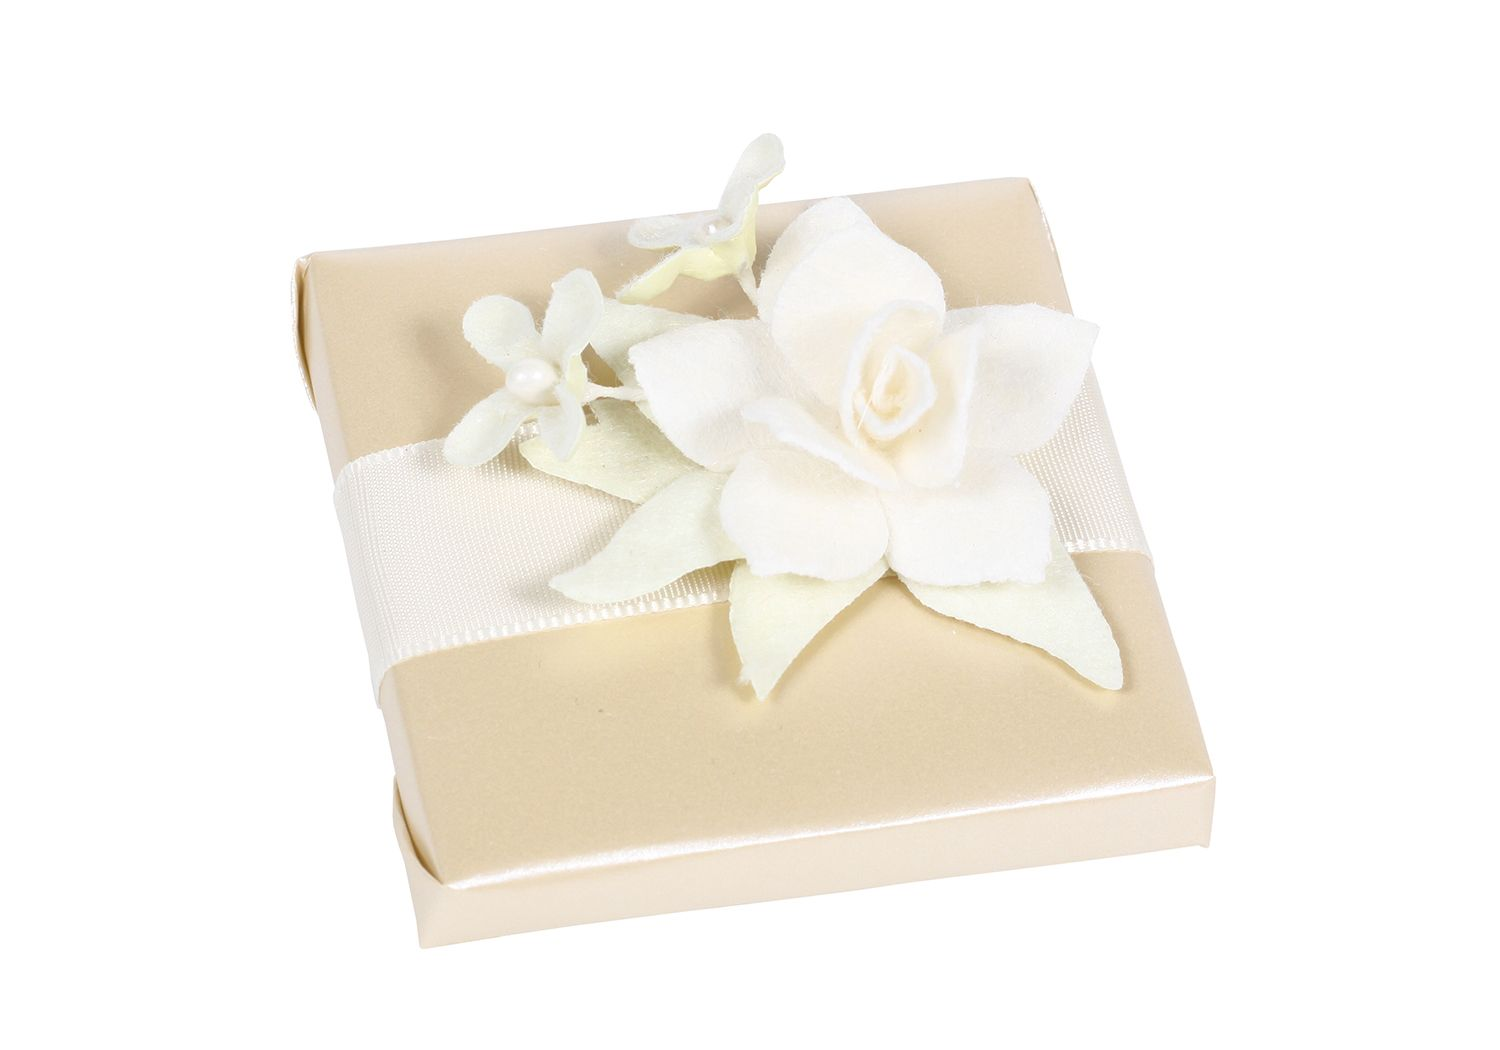 Patchi Lily Luster Chocolate favor (Large) http://patchi.us/wedding ...